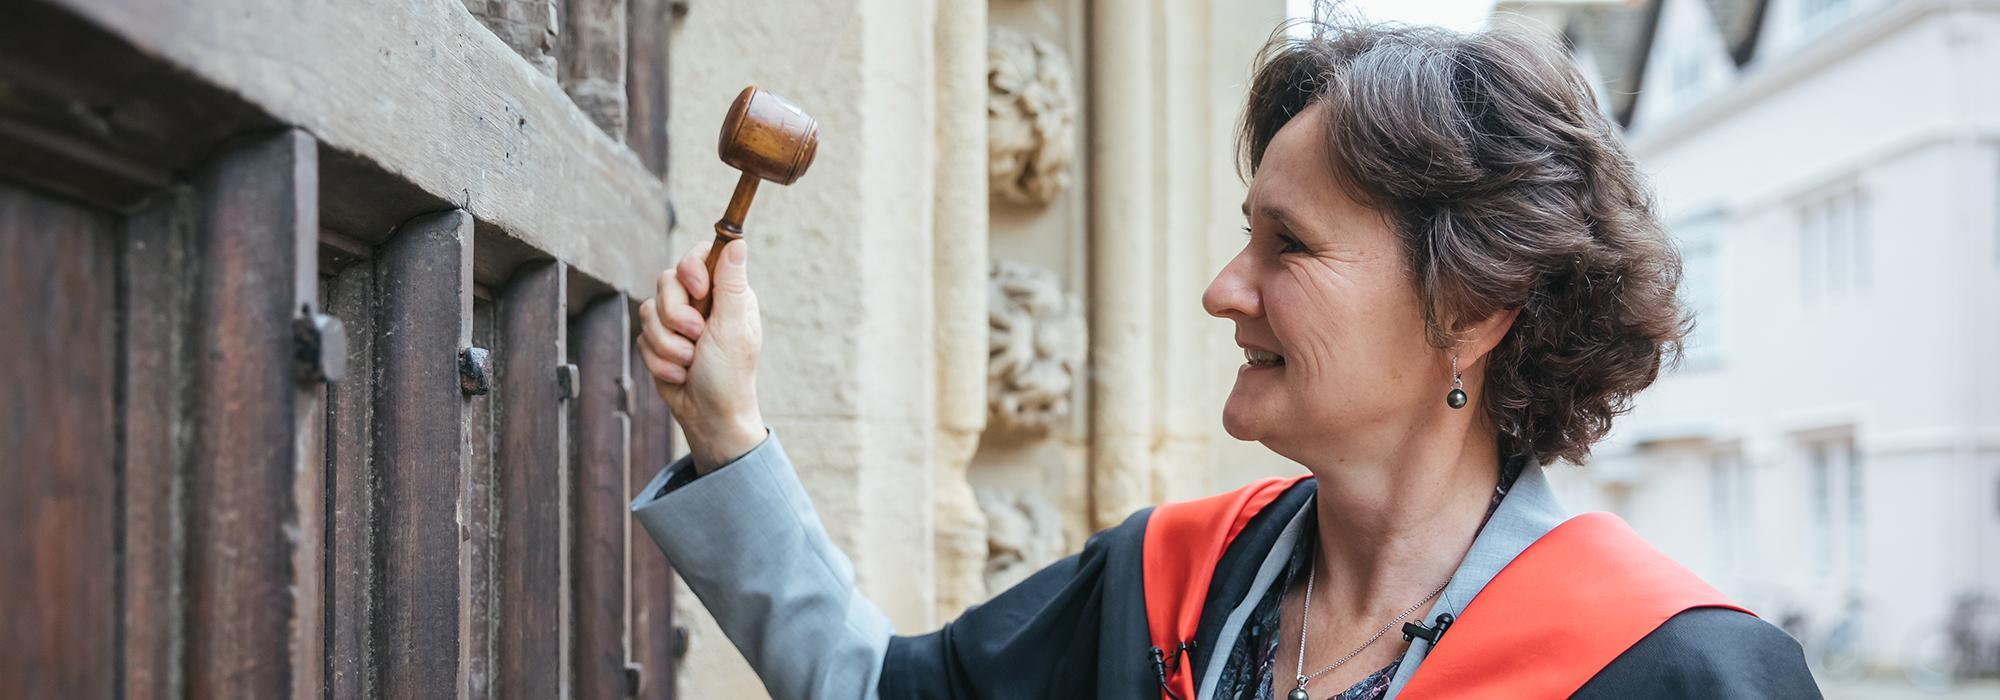 Professor Irene Tracey knocks at the gate with a gavel, prior to her ceremonial installation as 51st Warden of Merton College, Oxford - Photo © Ian Wallman